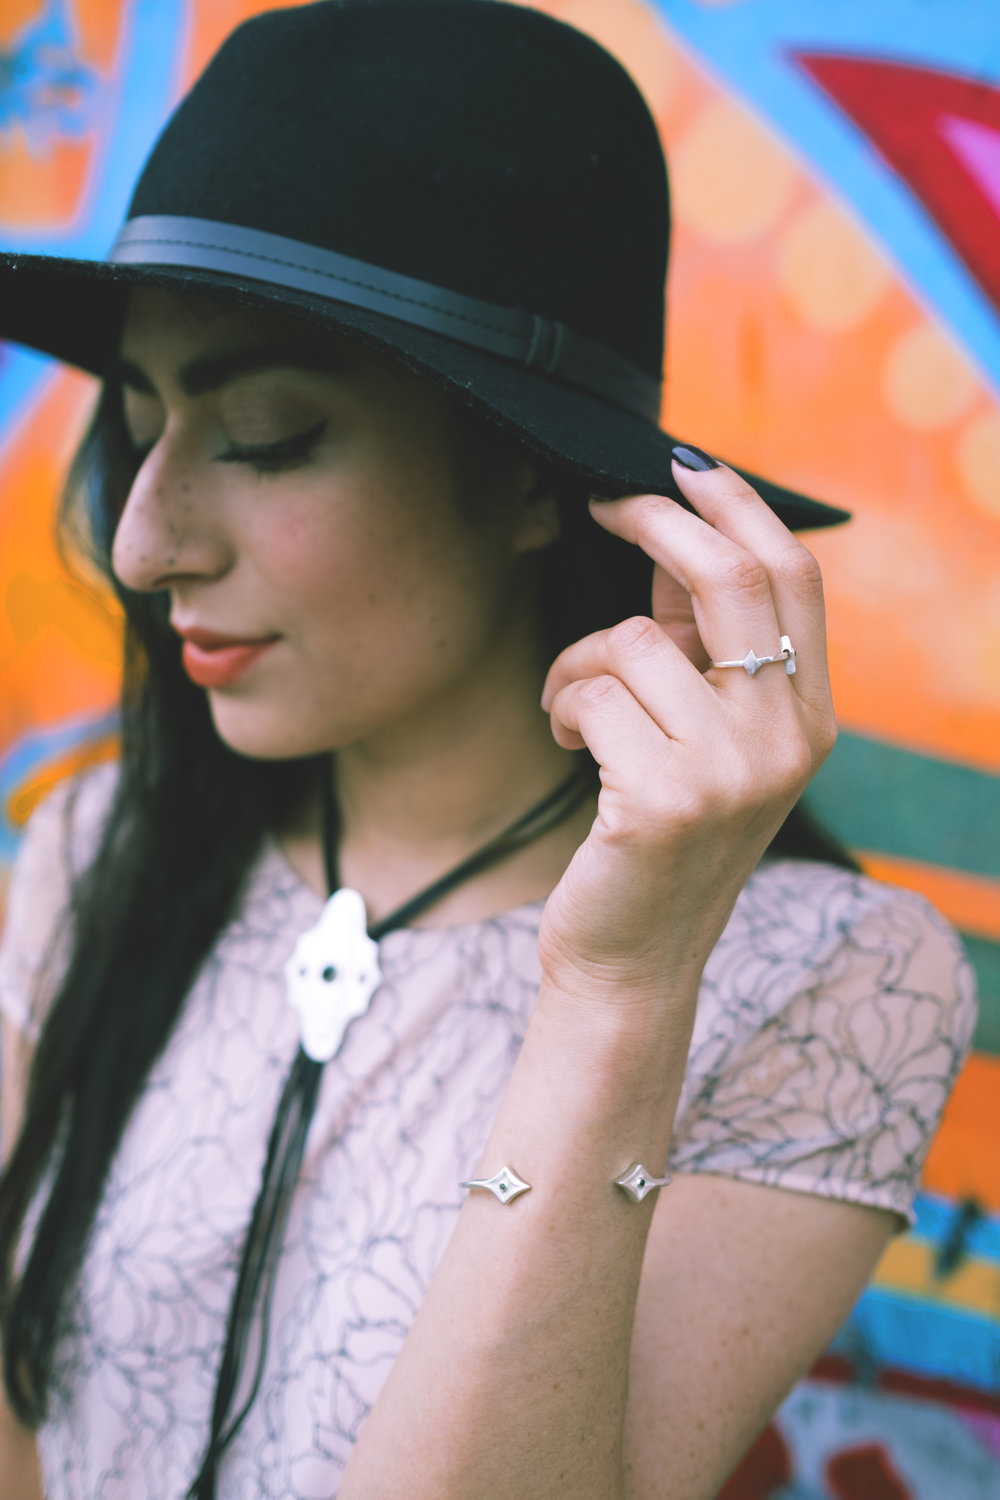 Wearing the Woven Trails Bolo Tie, Desert Night Ring, and Noche Negra Bracelet.